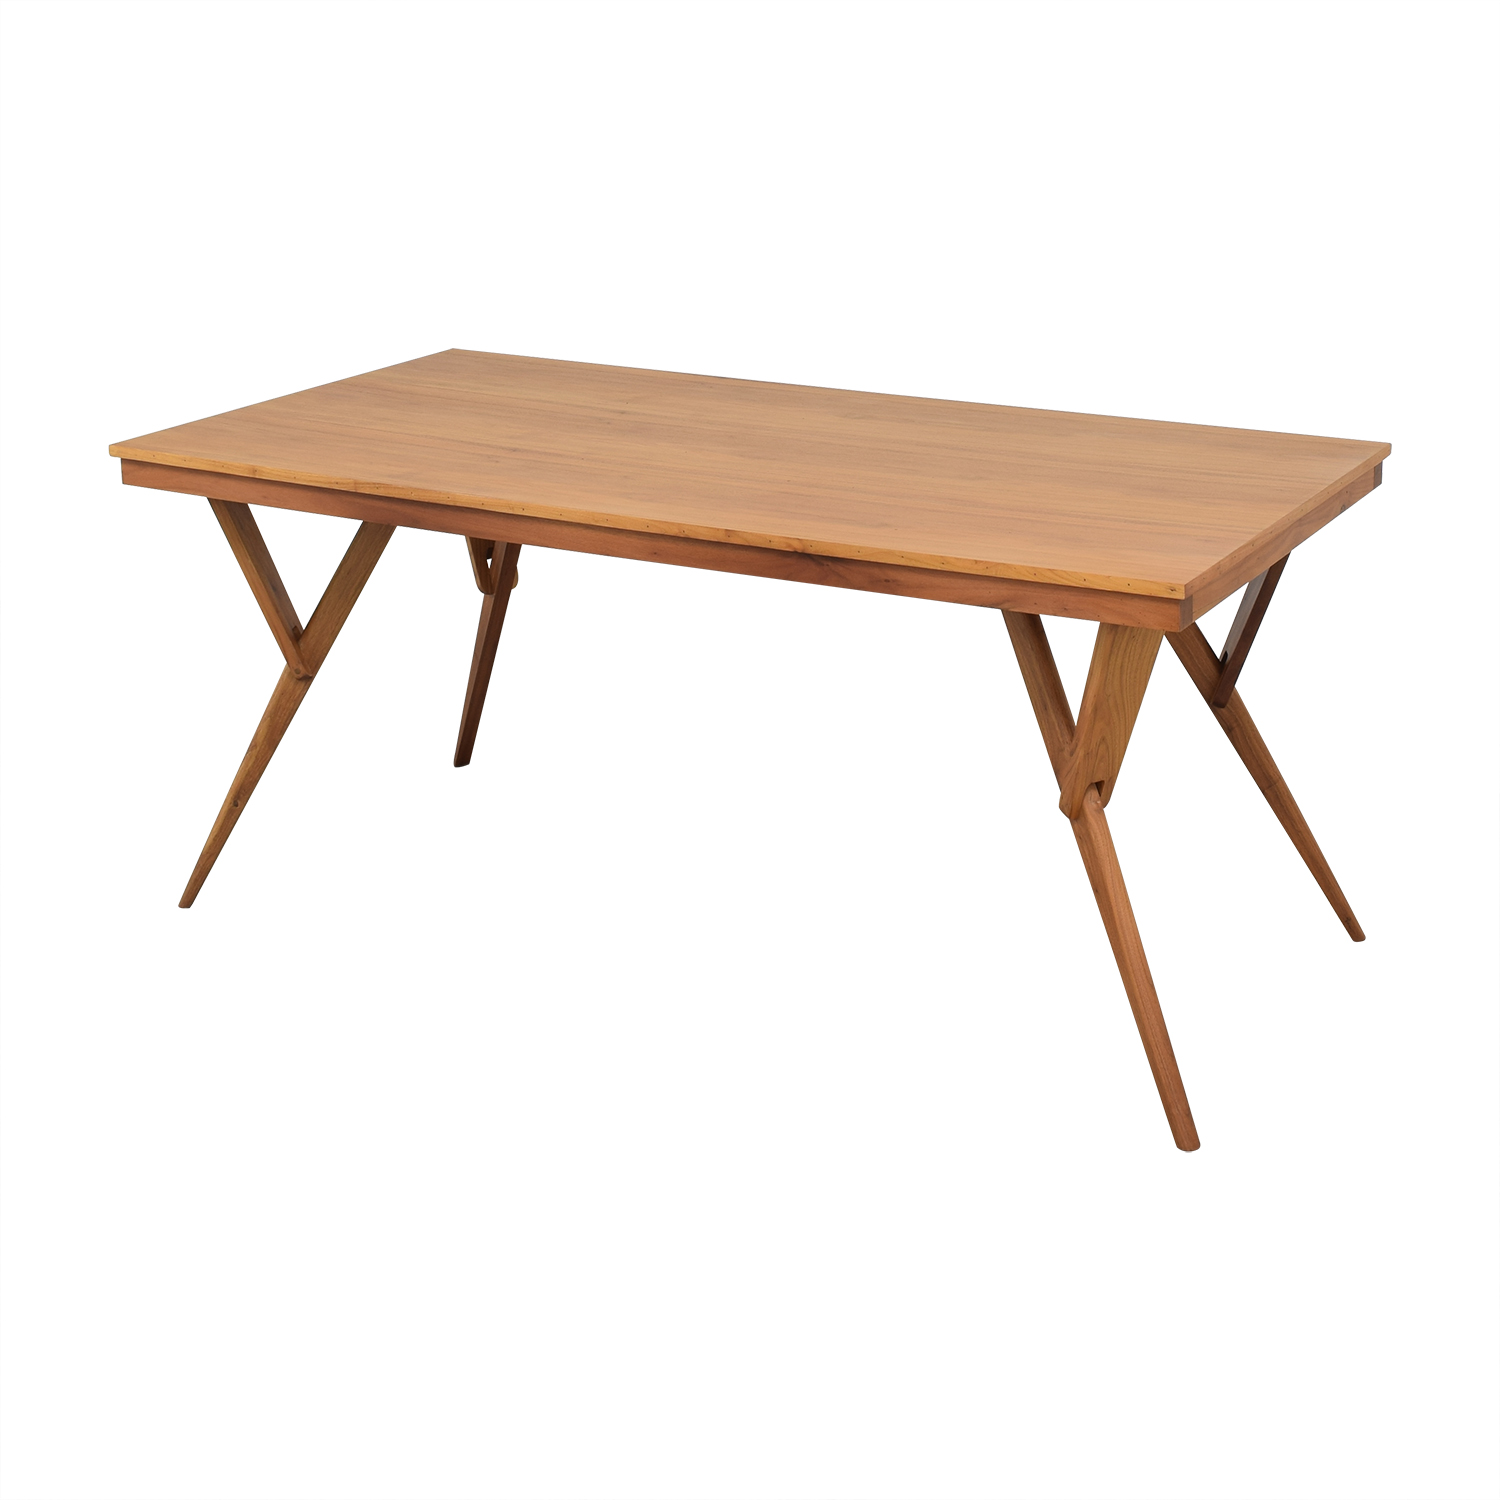 Organic Modernism Organic Modernism Palermo Dining Table dimensions